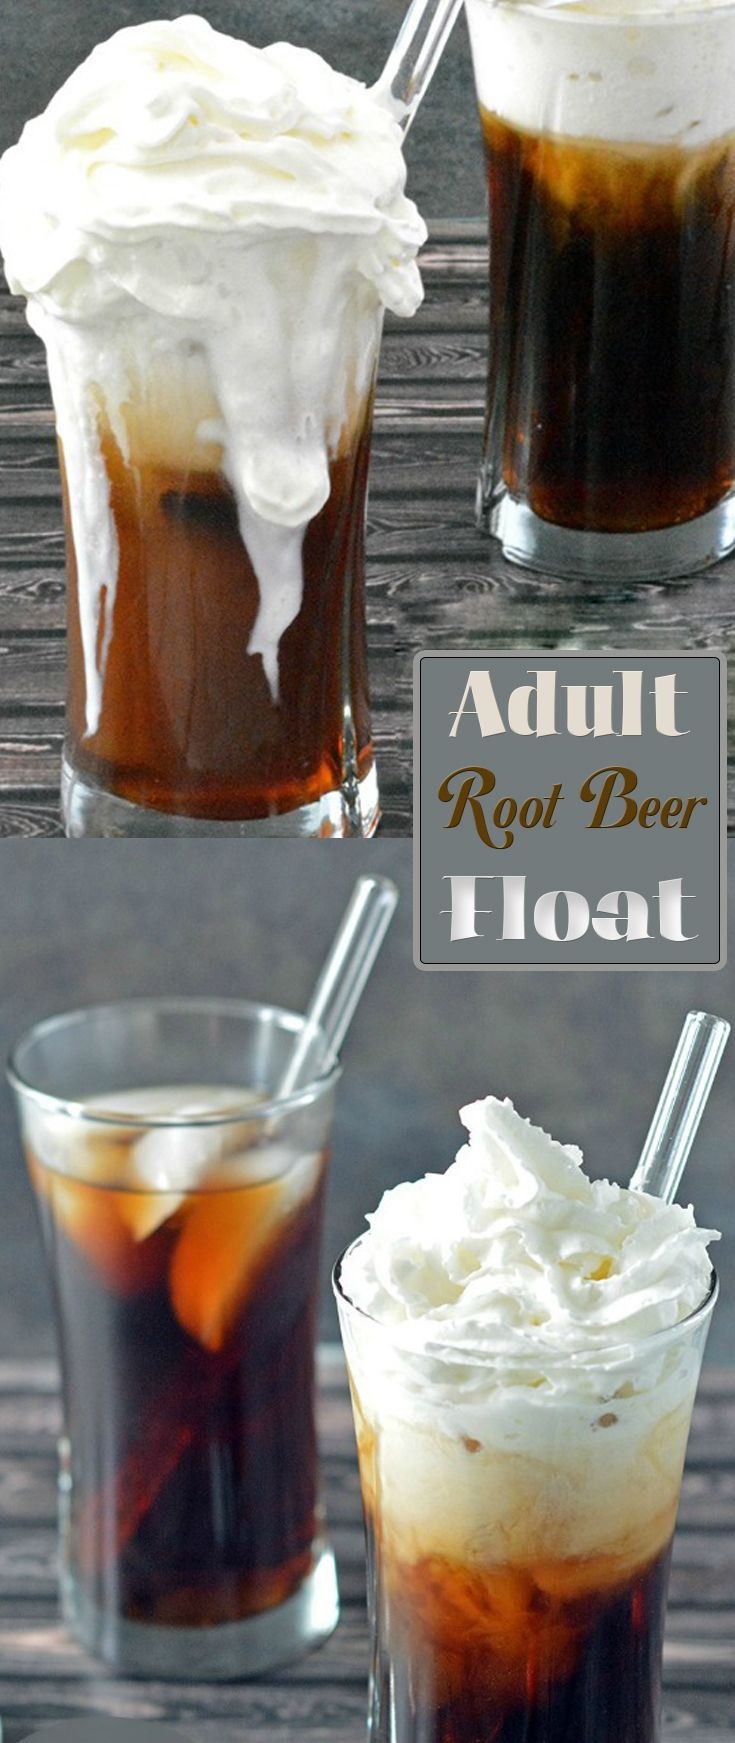 1000+ images about Adult Drinks on Pinterest | Pineapple juice, Blue ...